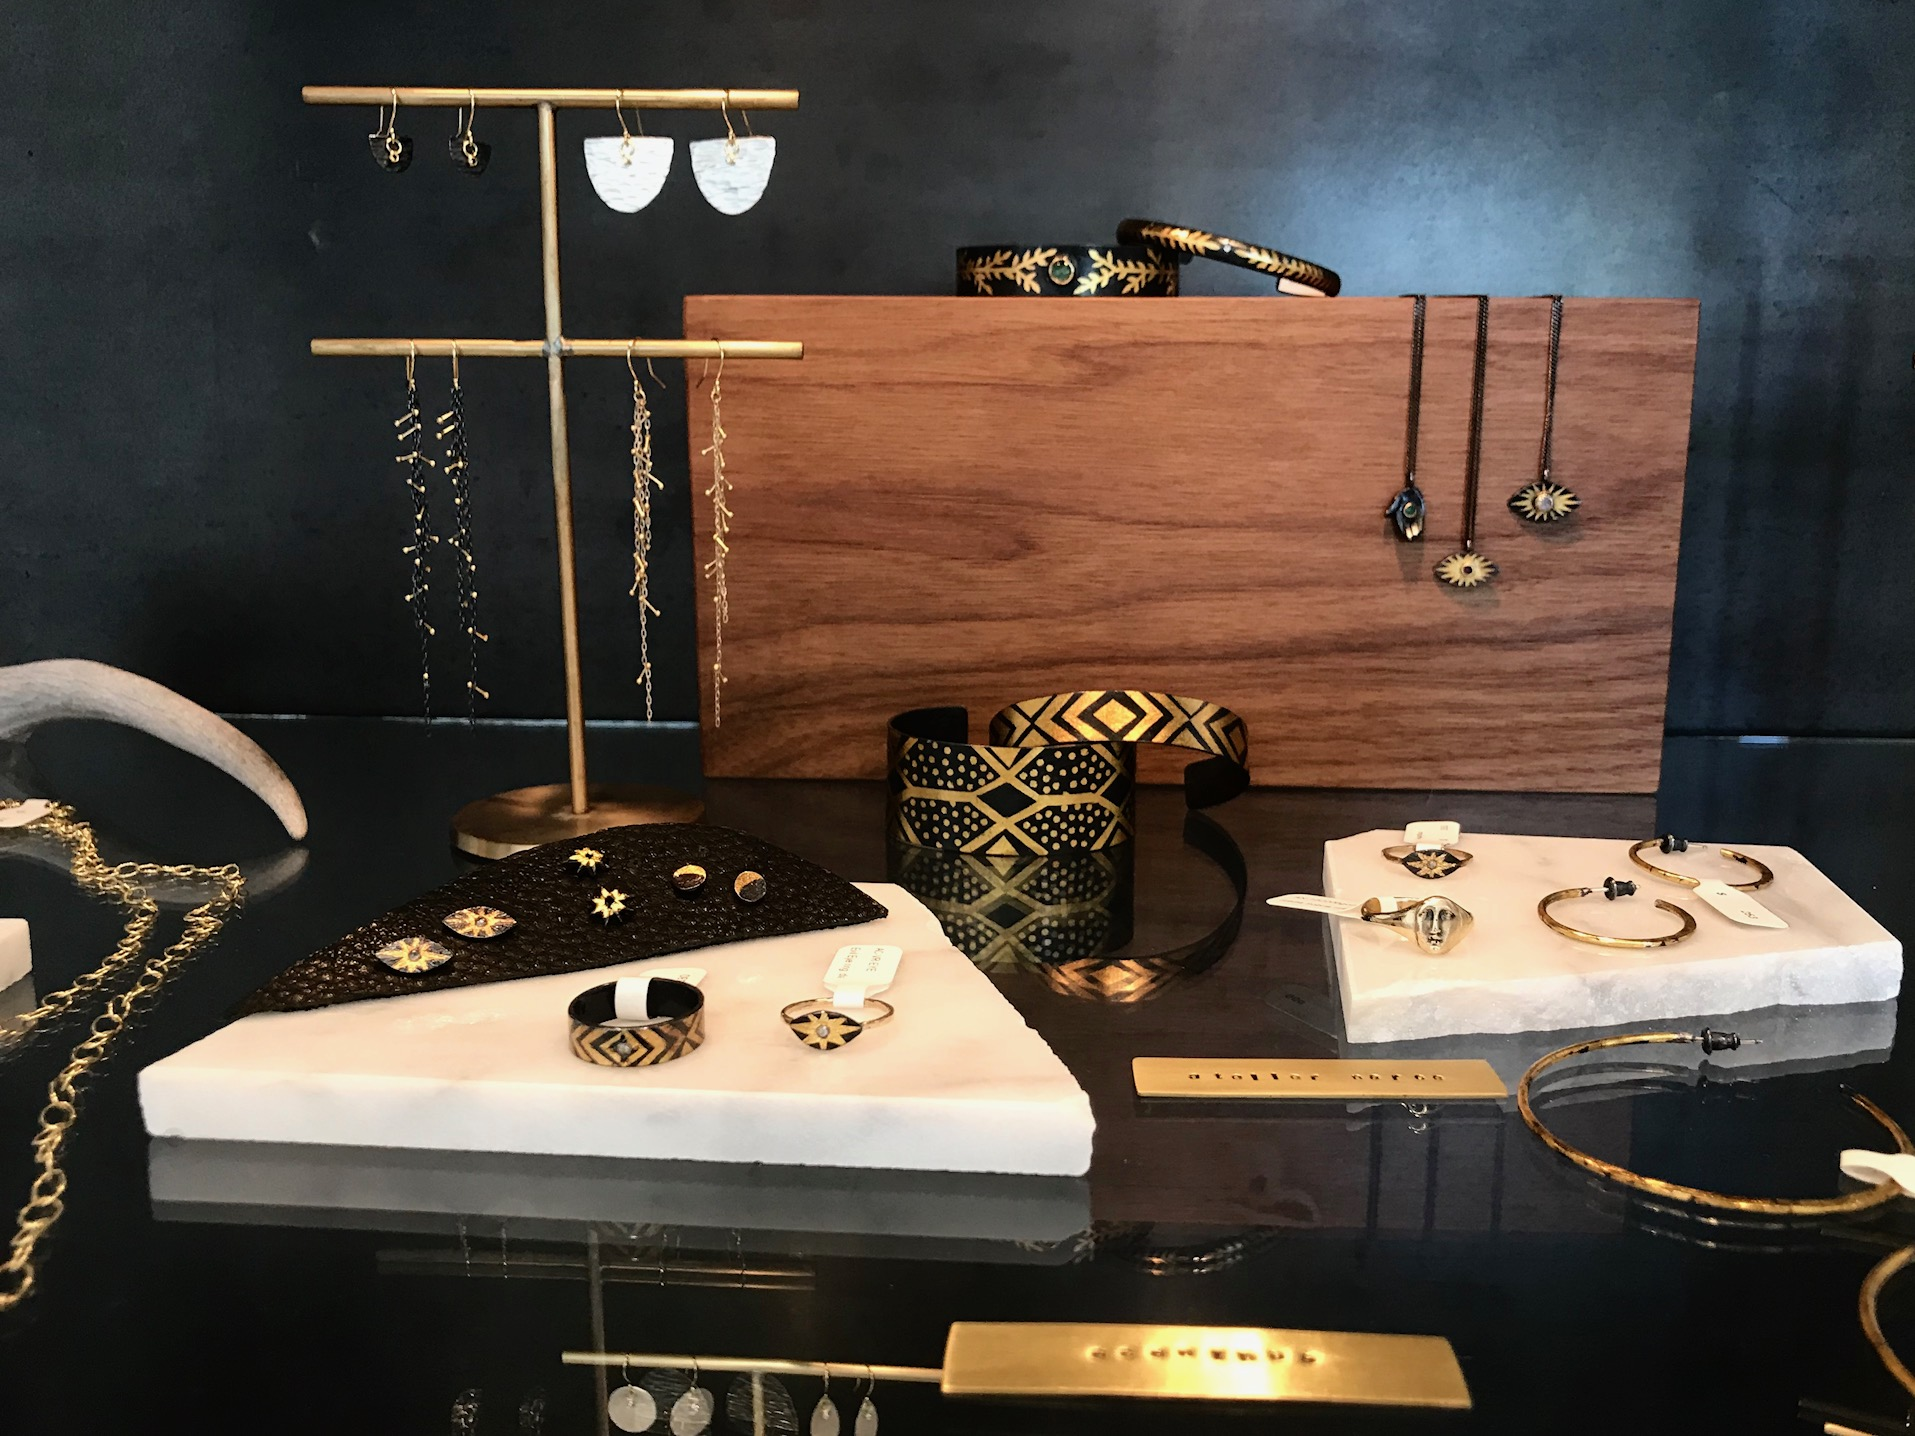 A selection of jewelry from Acanthus, Sarah McGuire, and Atelier Narcé